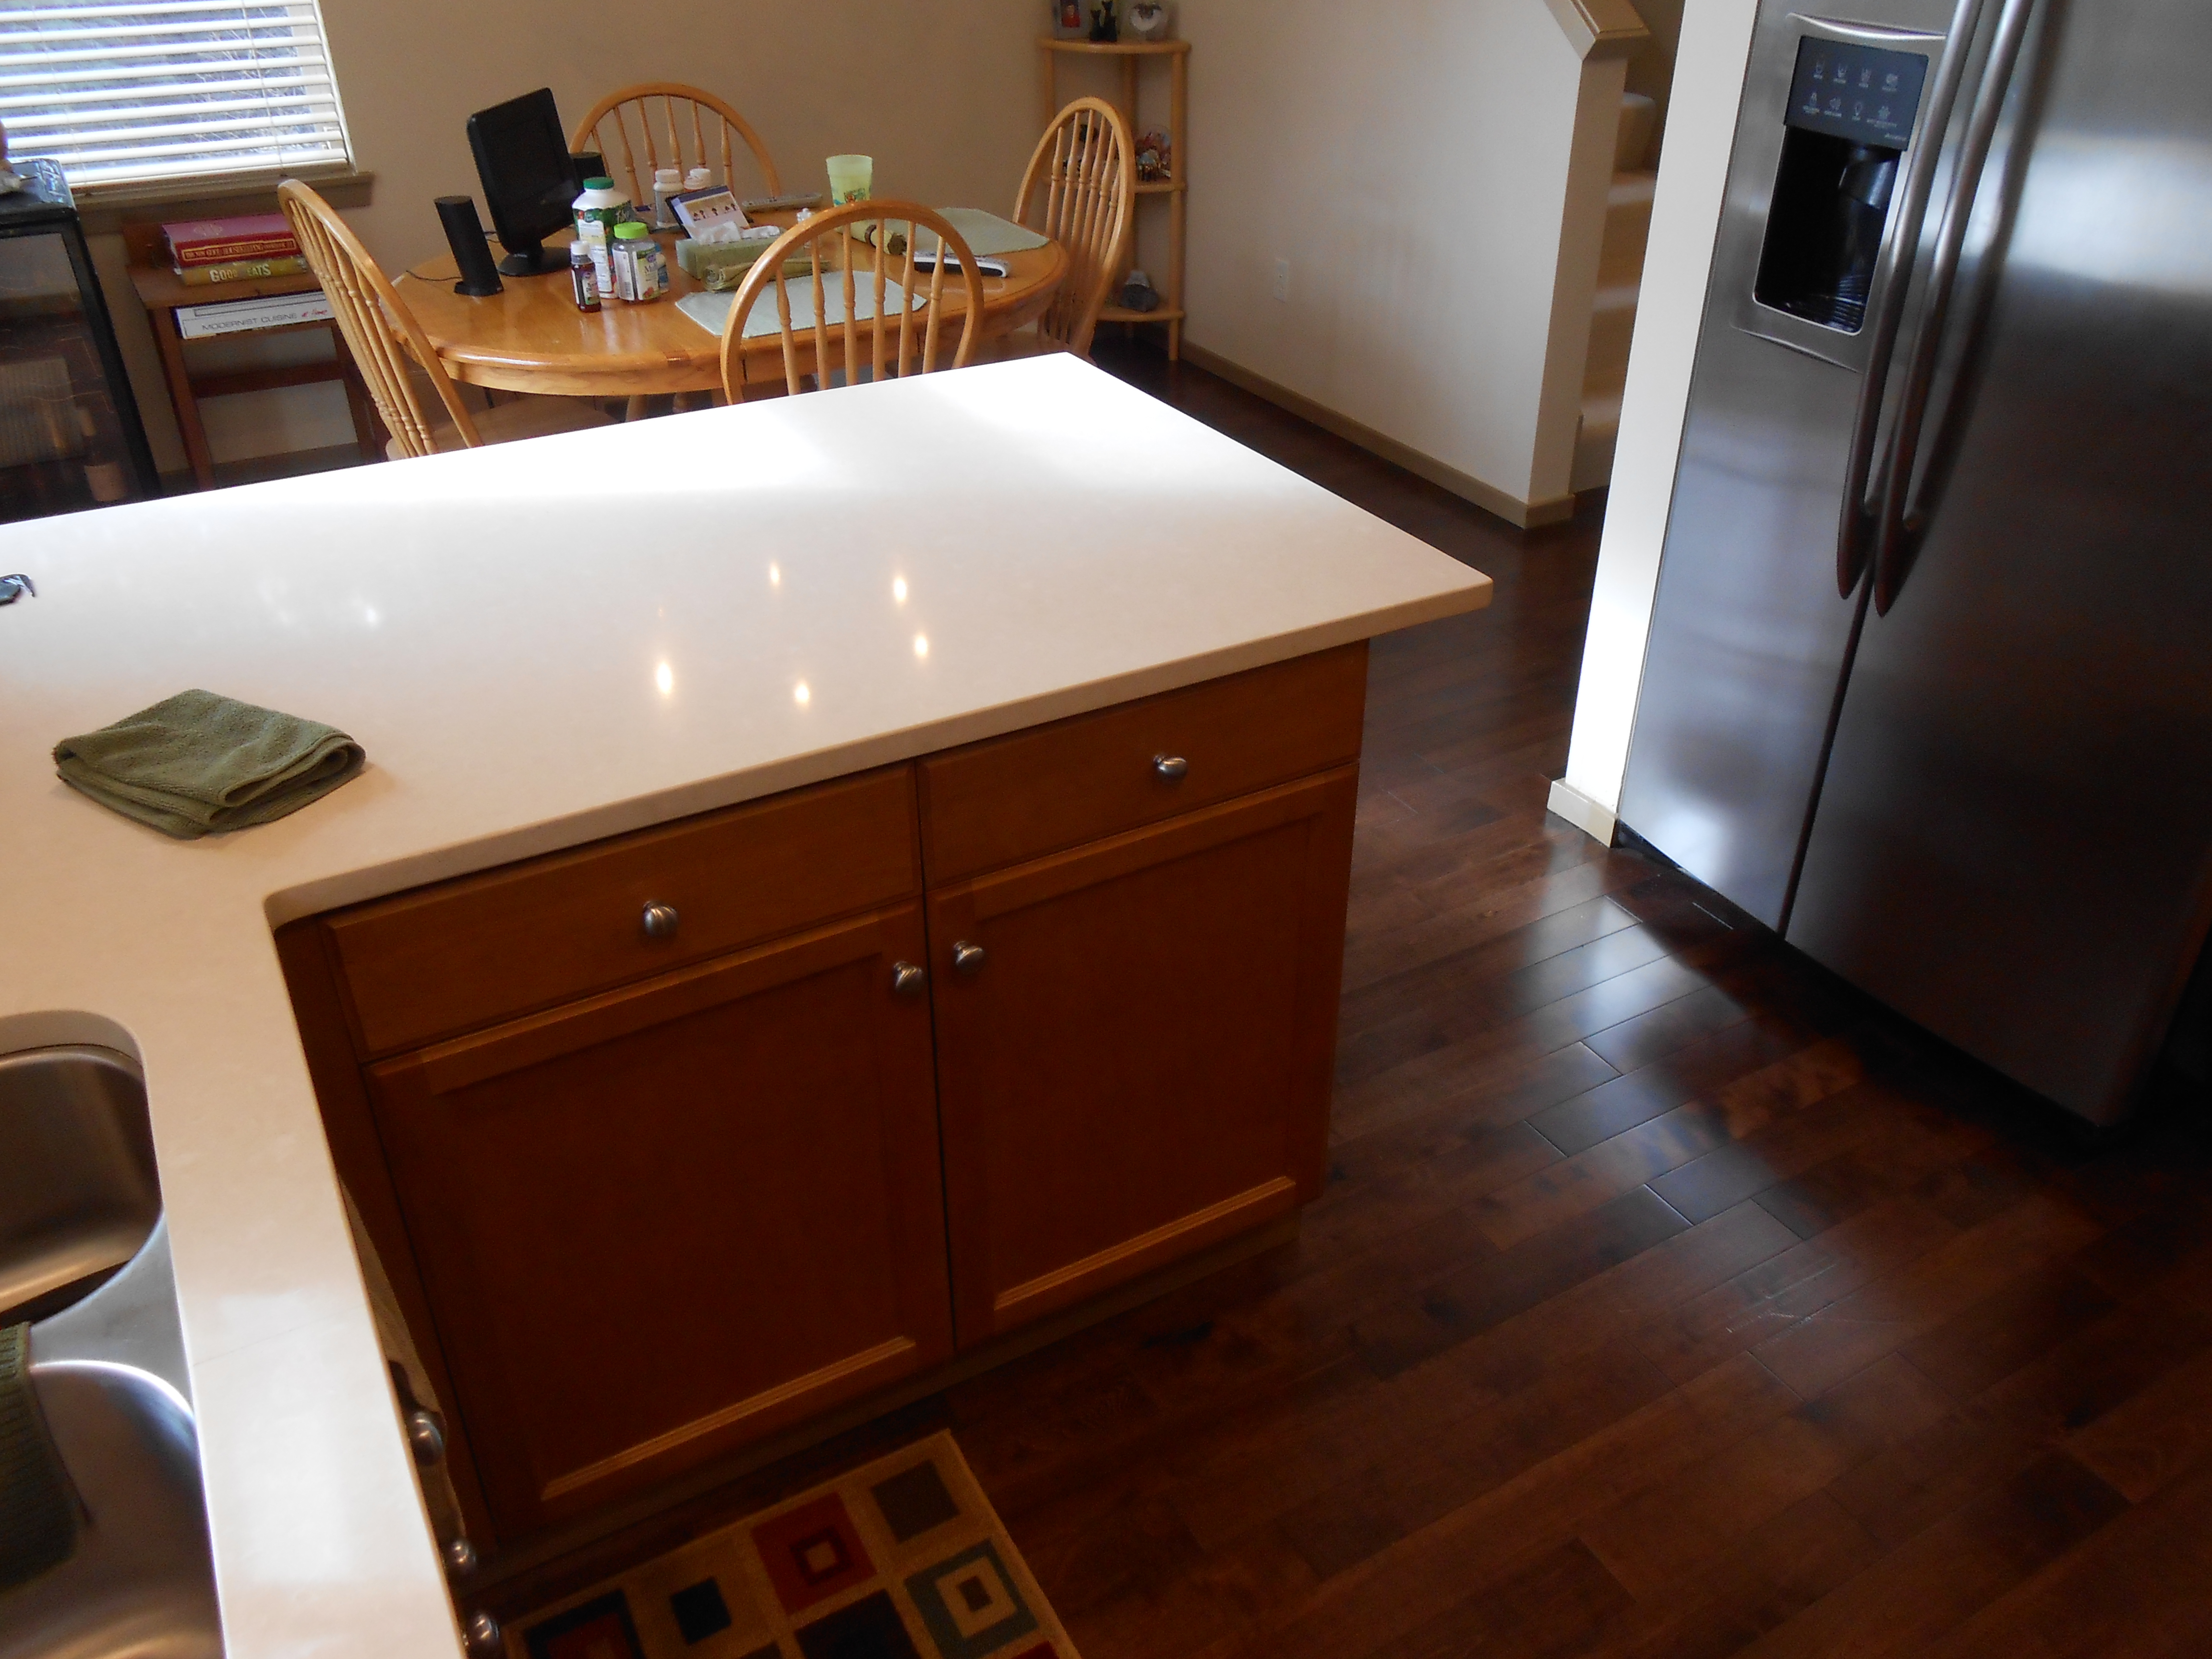 quartz slab countertop and pre-stained hardwood flooring